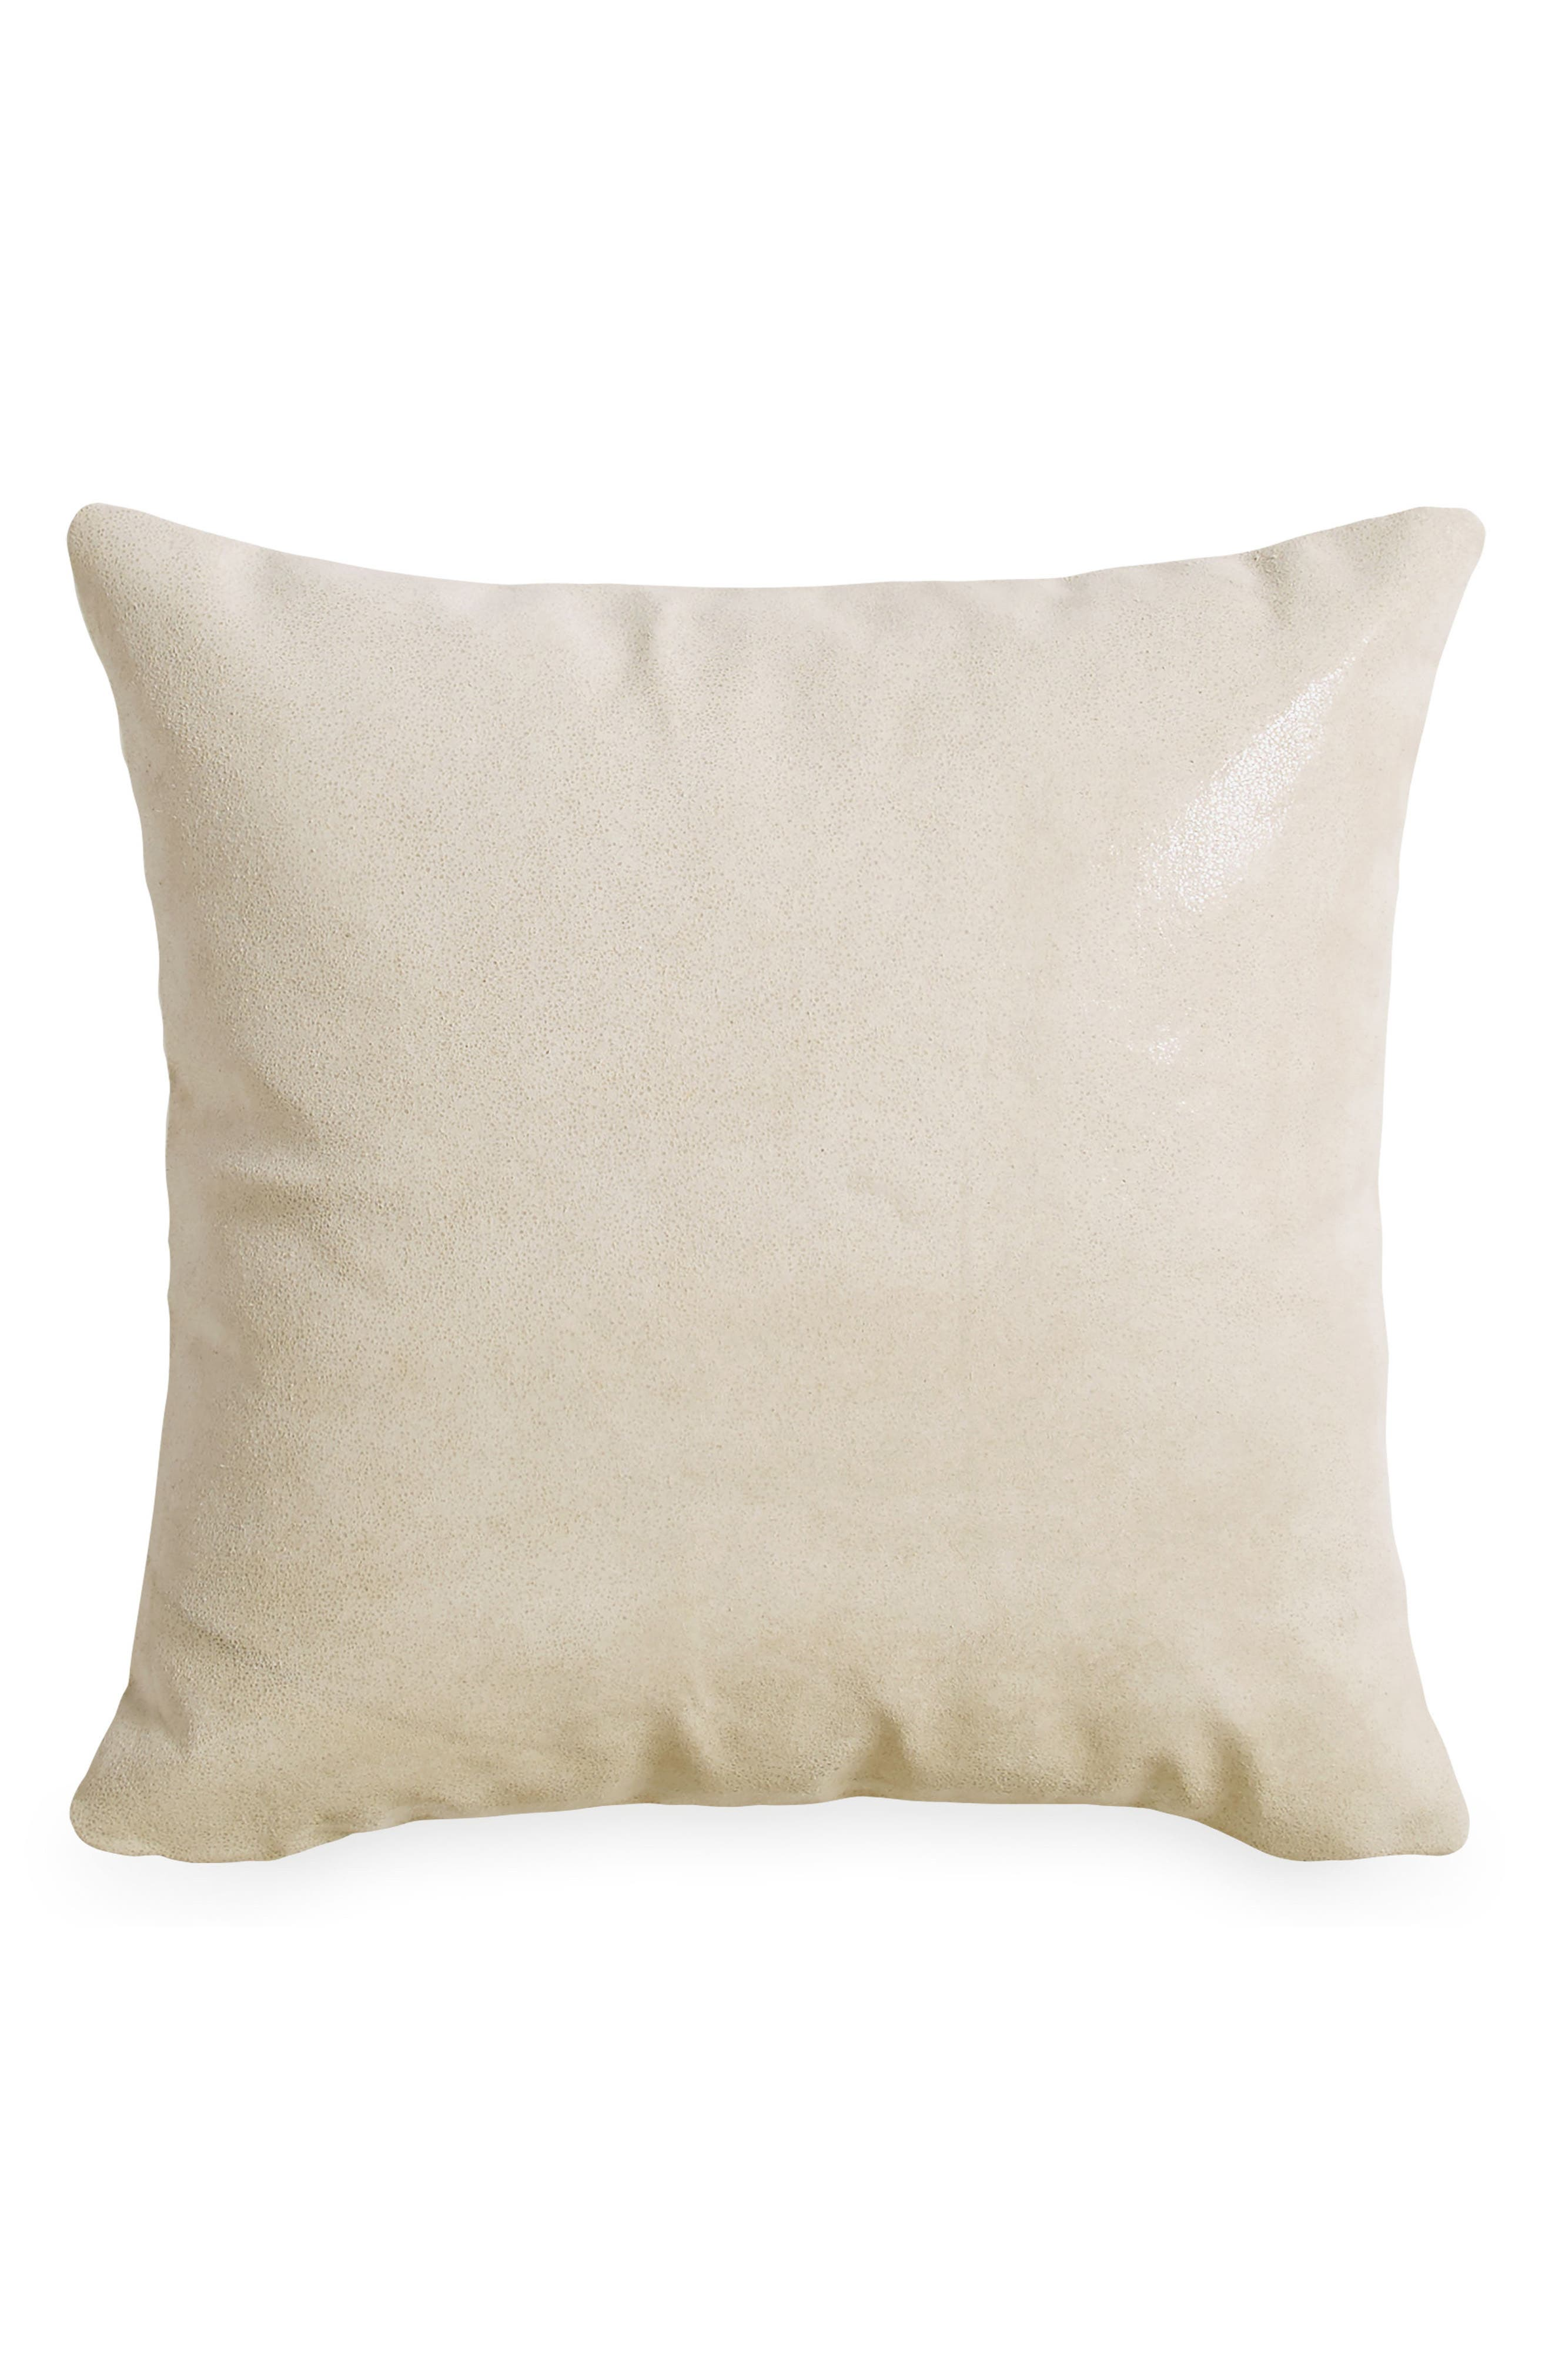 Tidal Accent Pillow,                         Main,                         color, 040